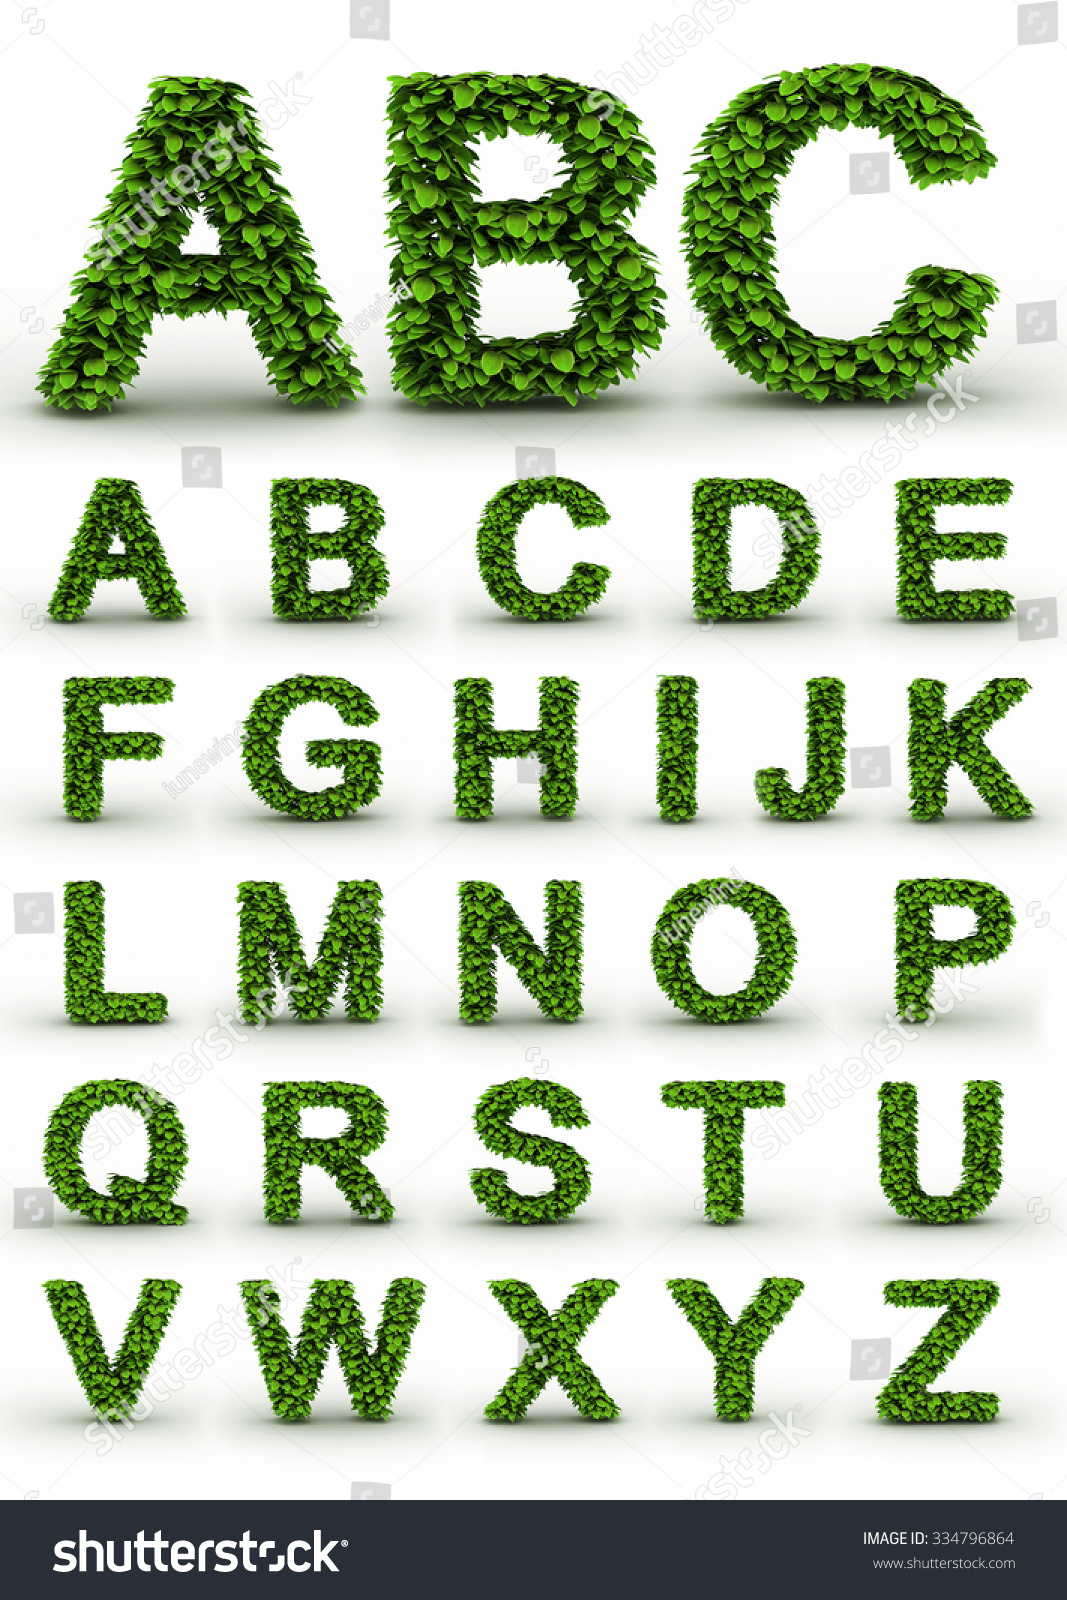 Green fresh leaves ecology font full stock illustration 334796864 green fresh leaves ecology font full alphabet letters set biggest version of each letter biocorpaavc Gallery